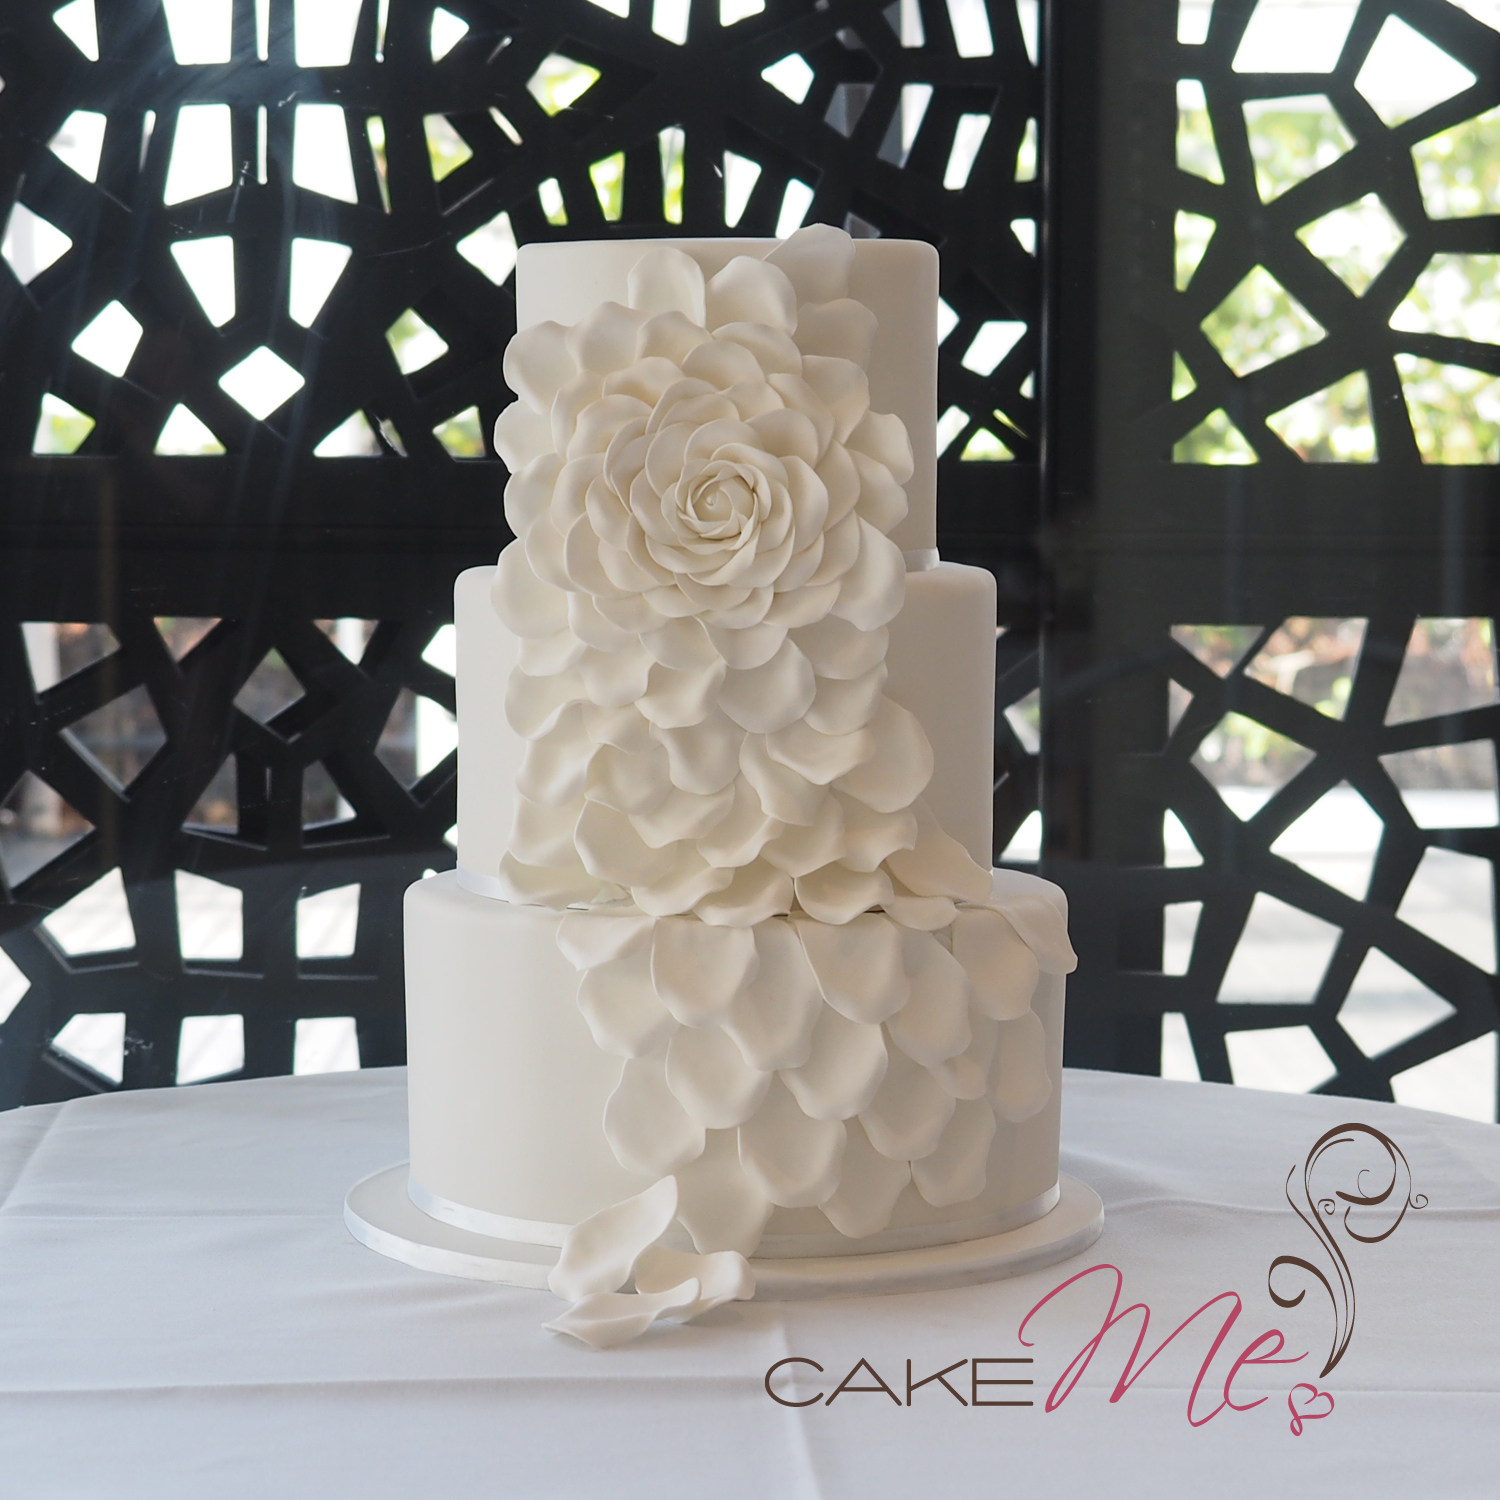 Farzeen and Matt's wedding cake at The Deck, Prince Hotel.